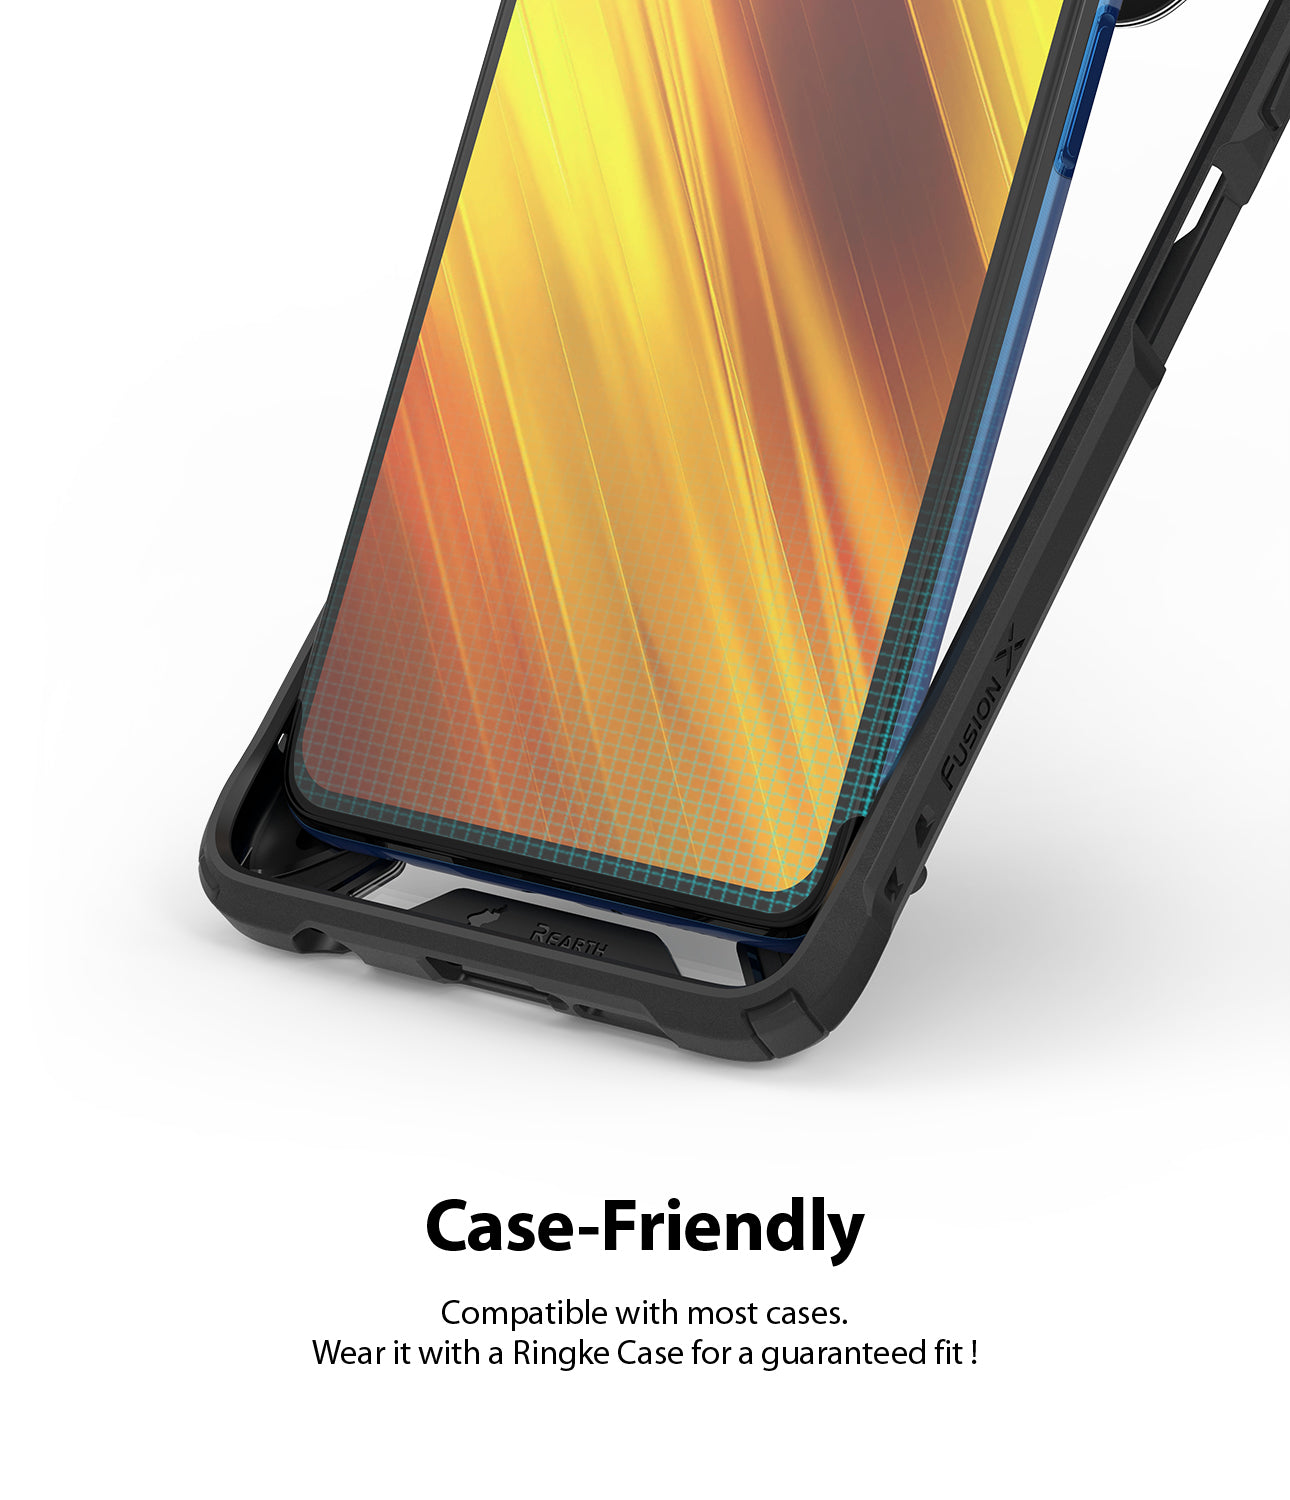 case friendly - compatible with most cases